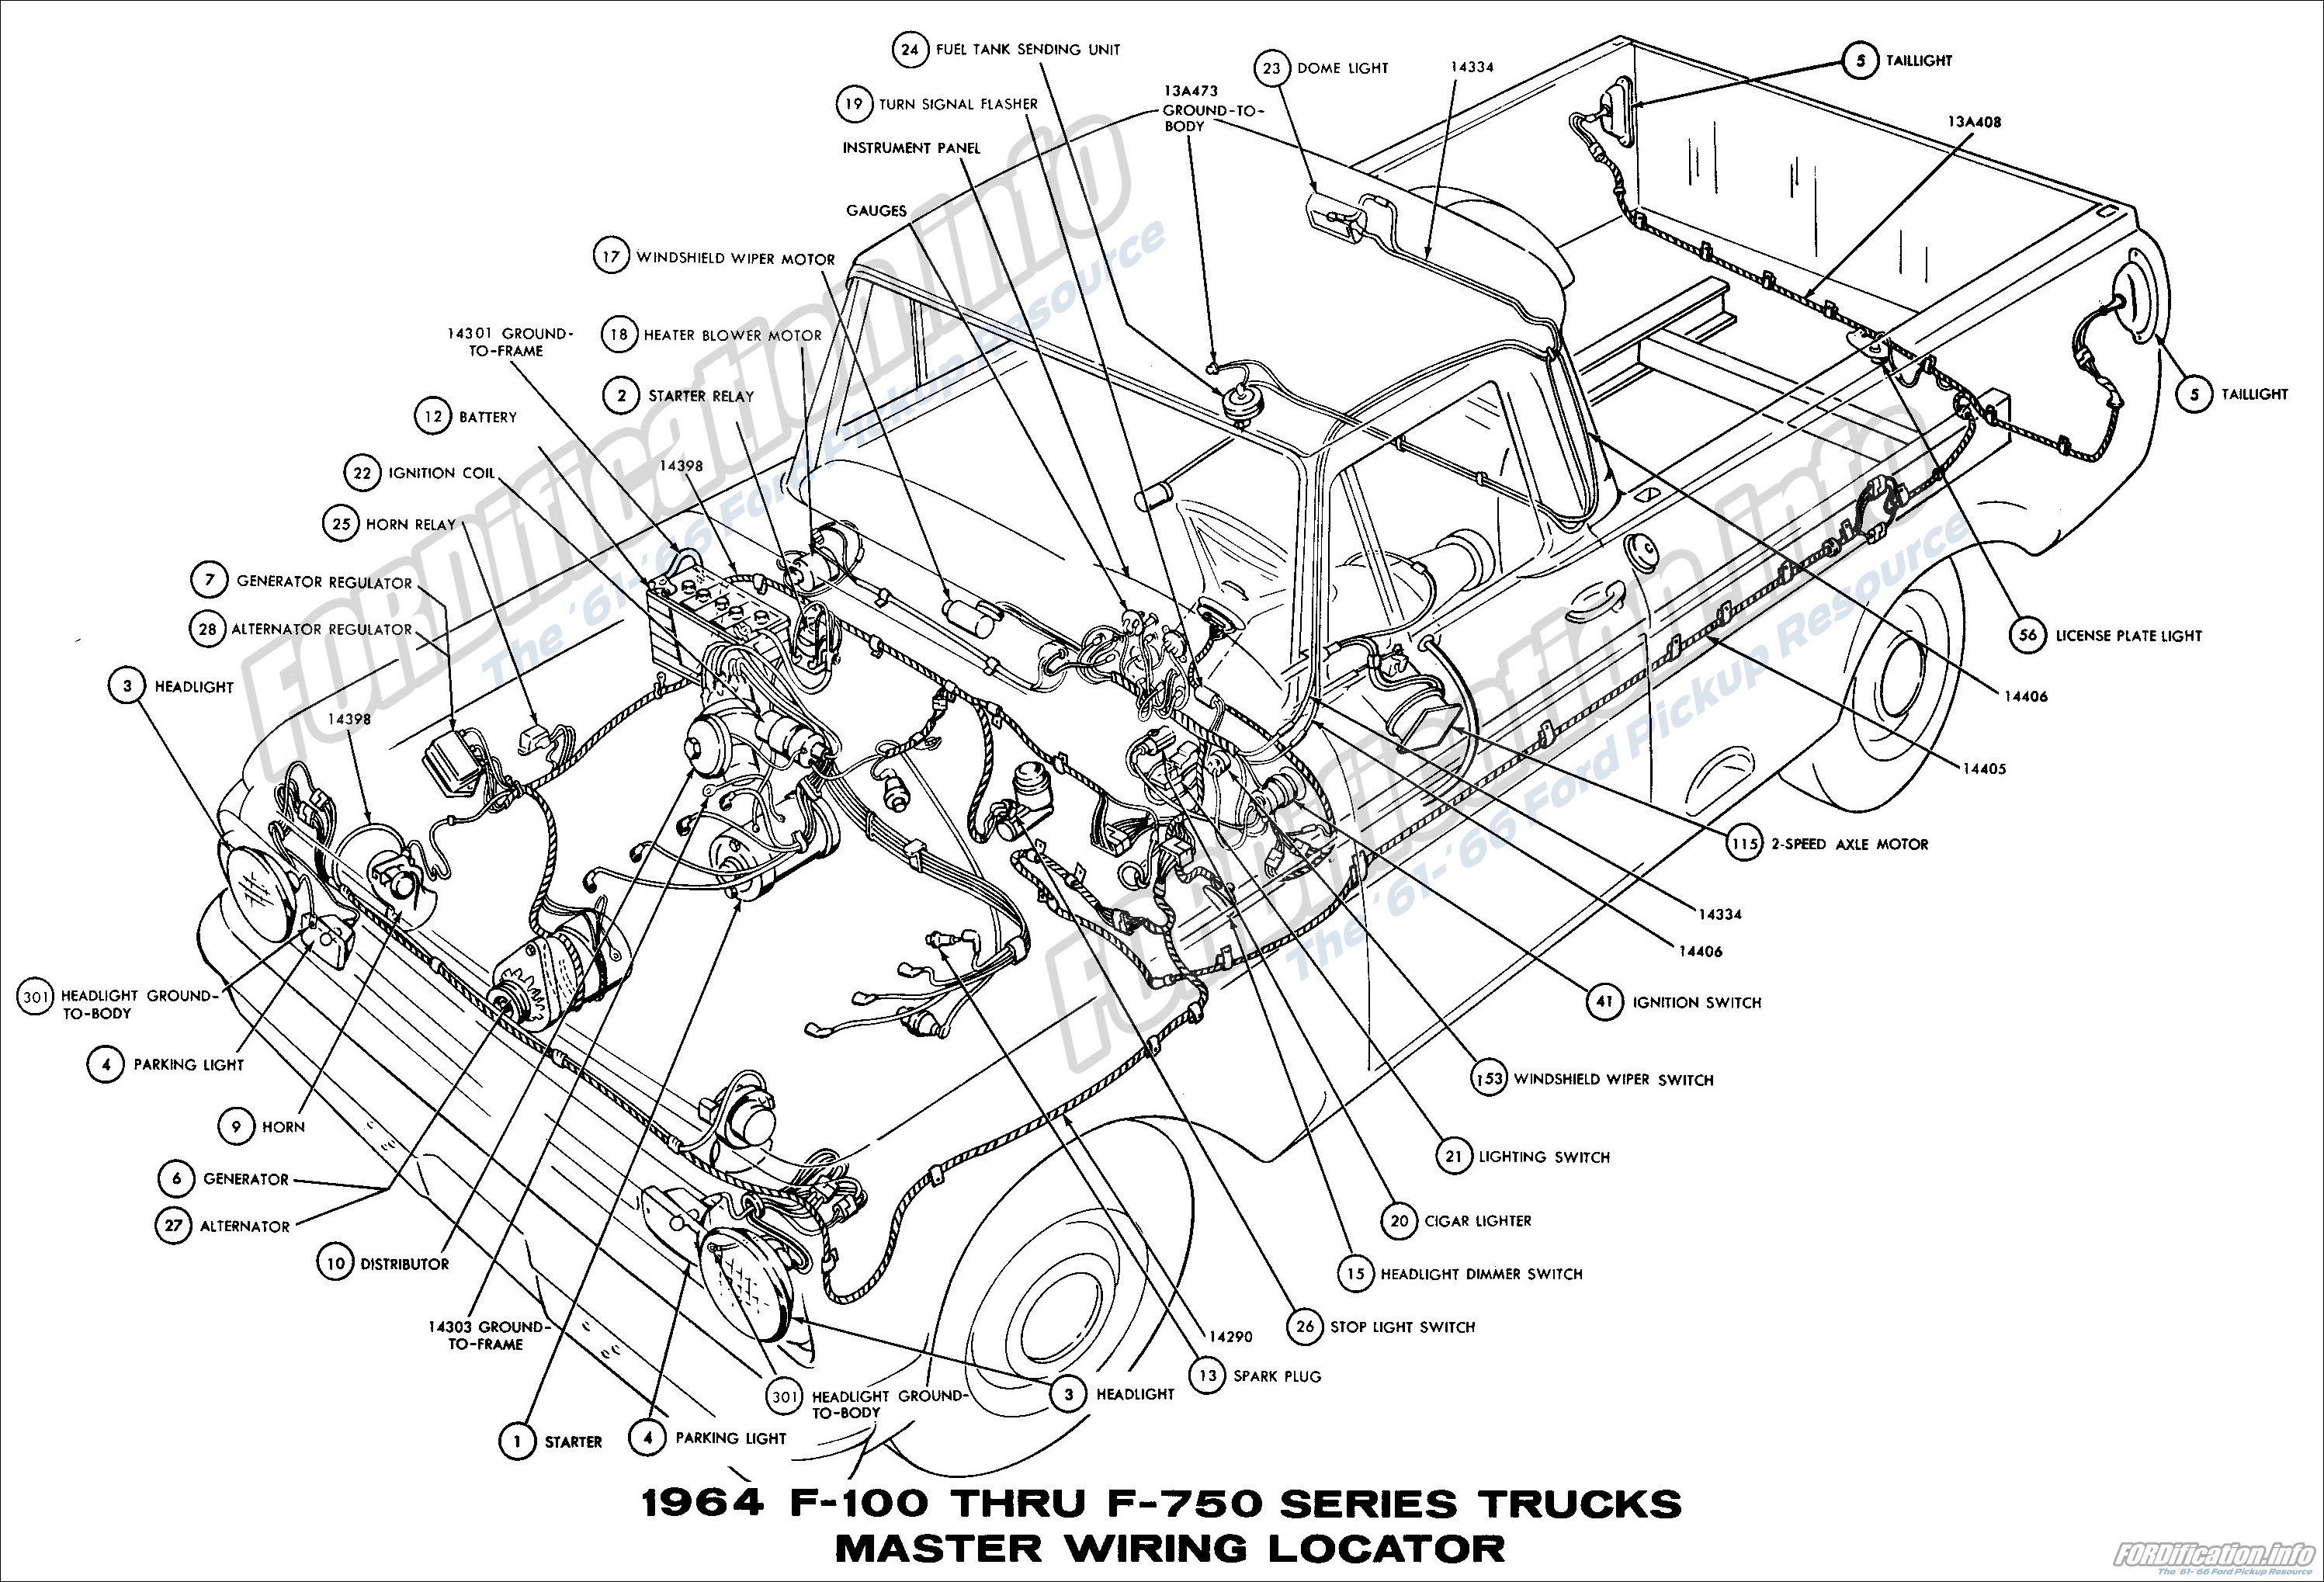 1964_01_gif 1964 ford truck wiring diagrams fordification info the '61 '66 ford truck wiring diagrams at nearapp.co